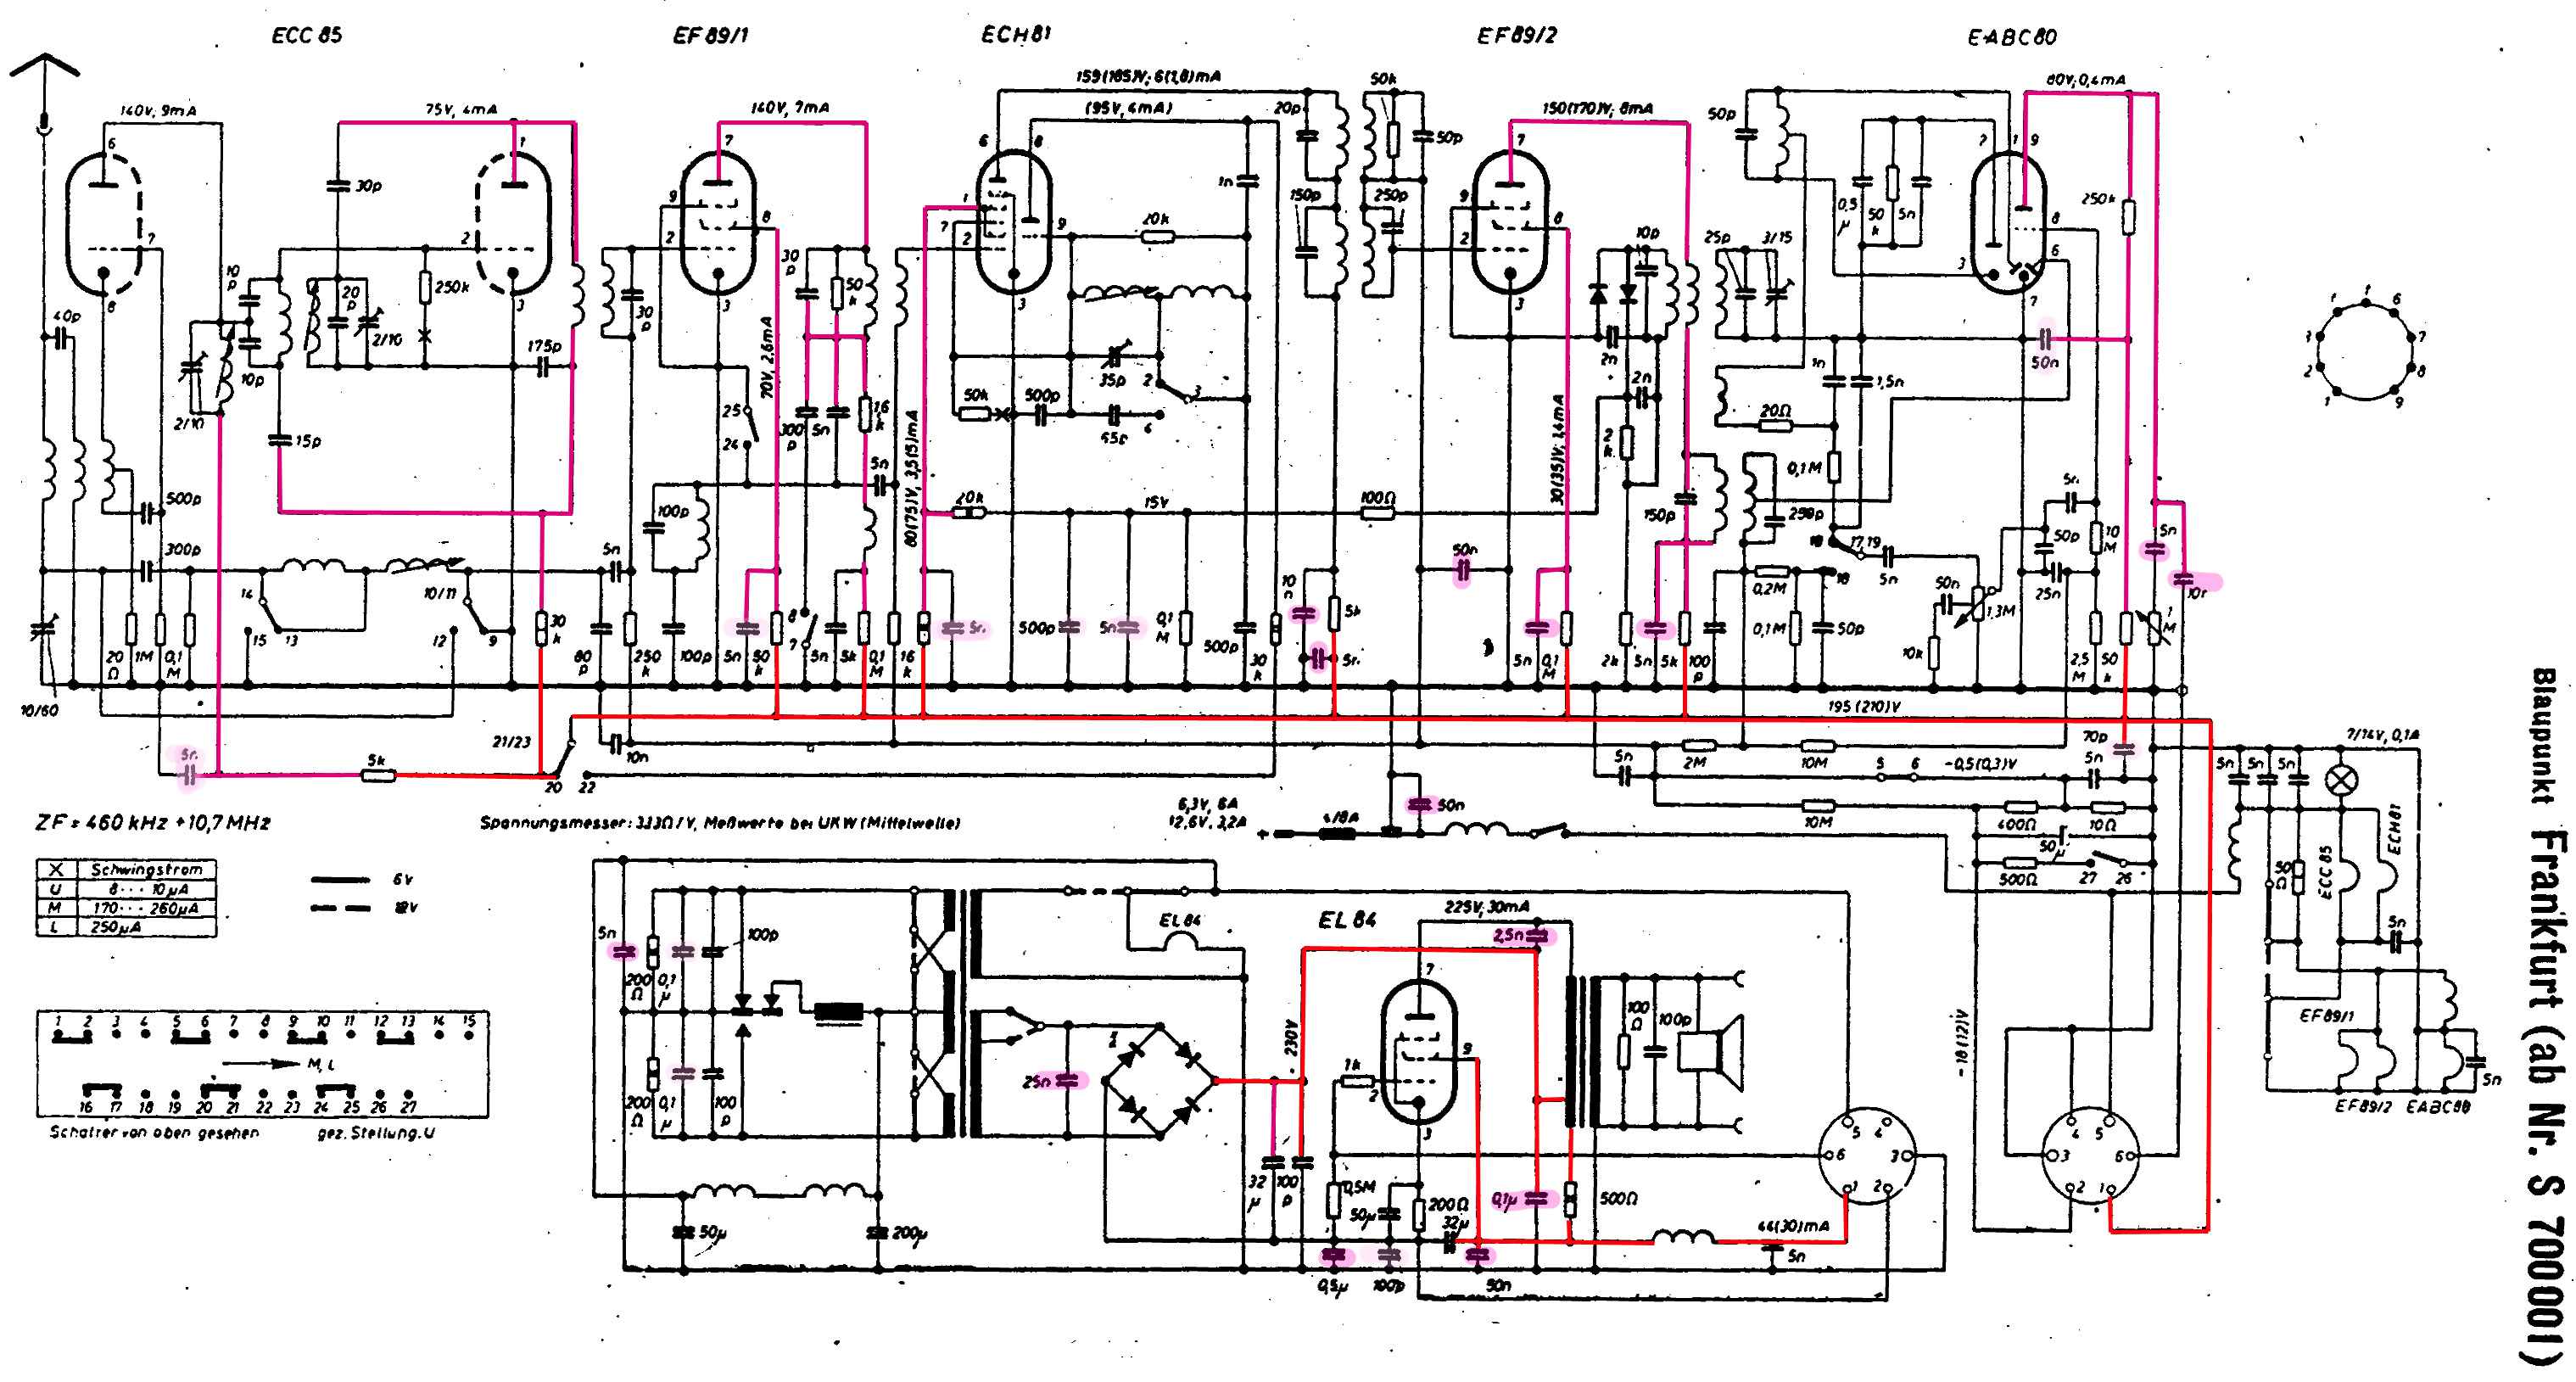 packard radio wiring diagram with Iat Wiring Diagram 1991 Merc Capri on Spp6 Wiring Diagram moreover Wiring Diagram Chrysler 300 Srt8 also Automotive Starter Wiring Diagram Automotive Starting in addition Delphi Pa66 Connector Diagram additionally Iat Wiring Diagram 1991 Merc Capri.